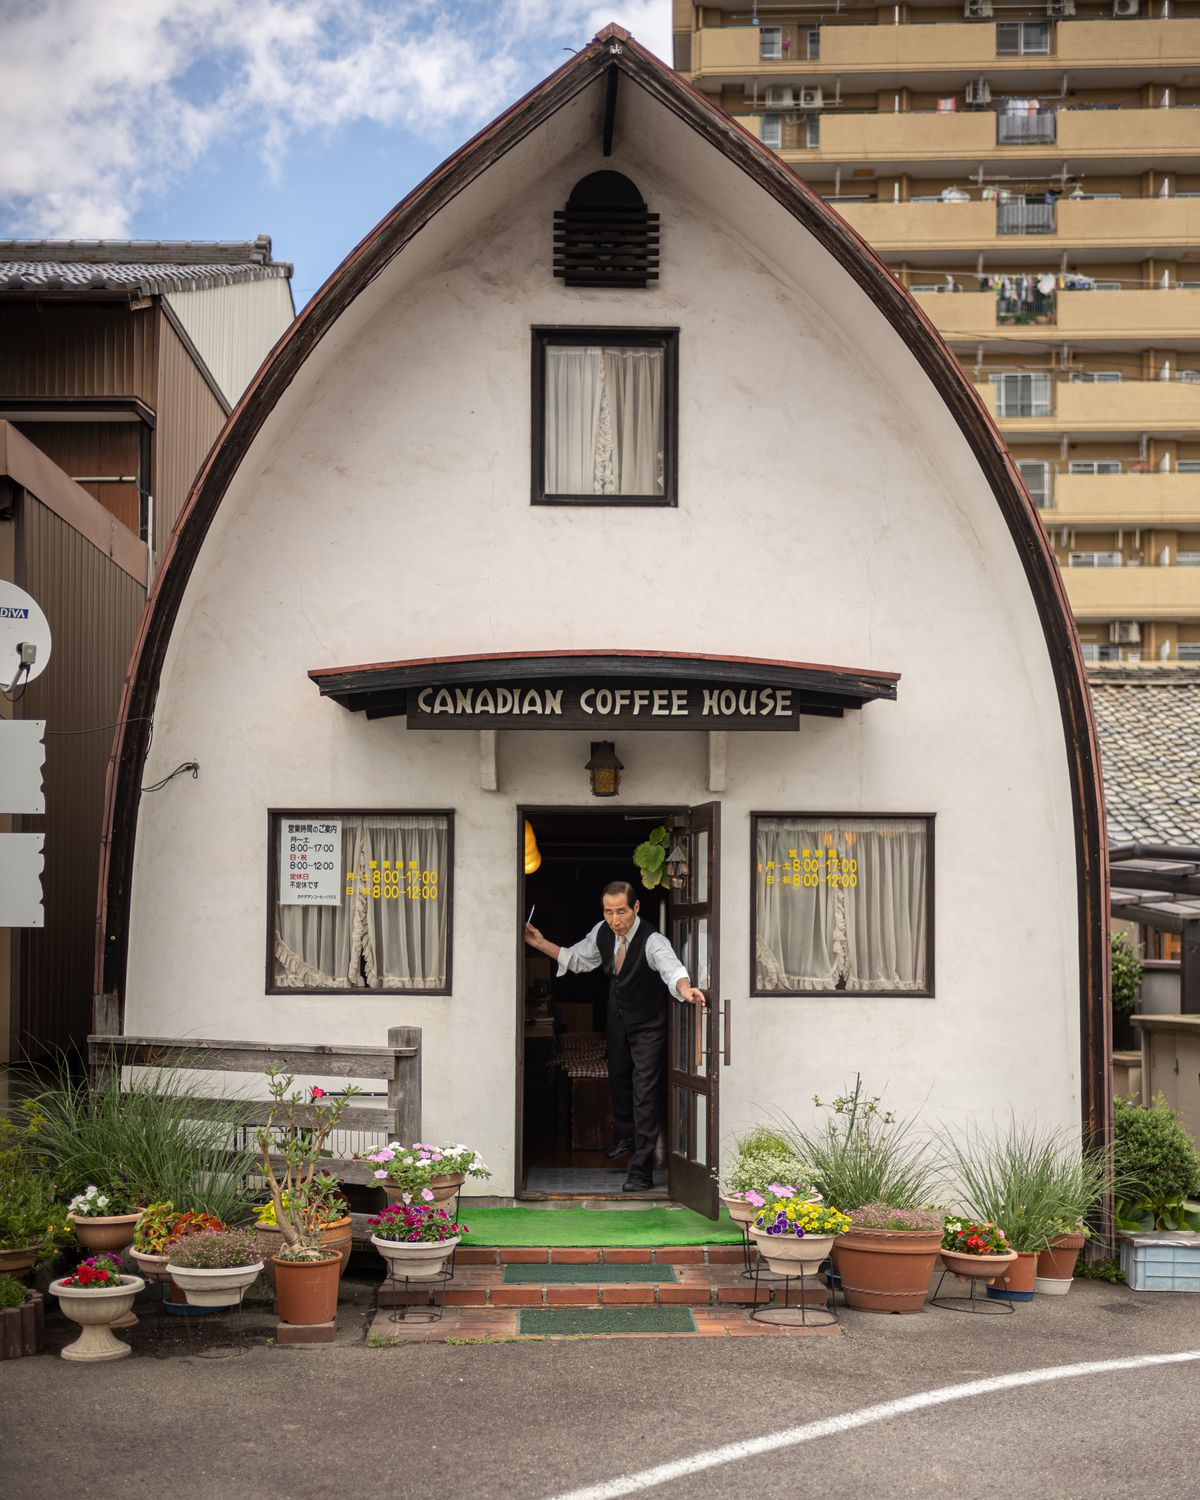 Mr. Sakai reaches out to shut the door at Canadian Coffee House